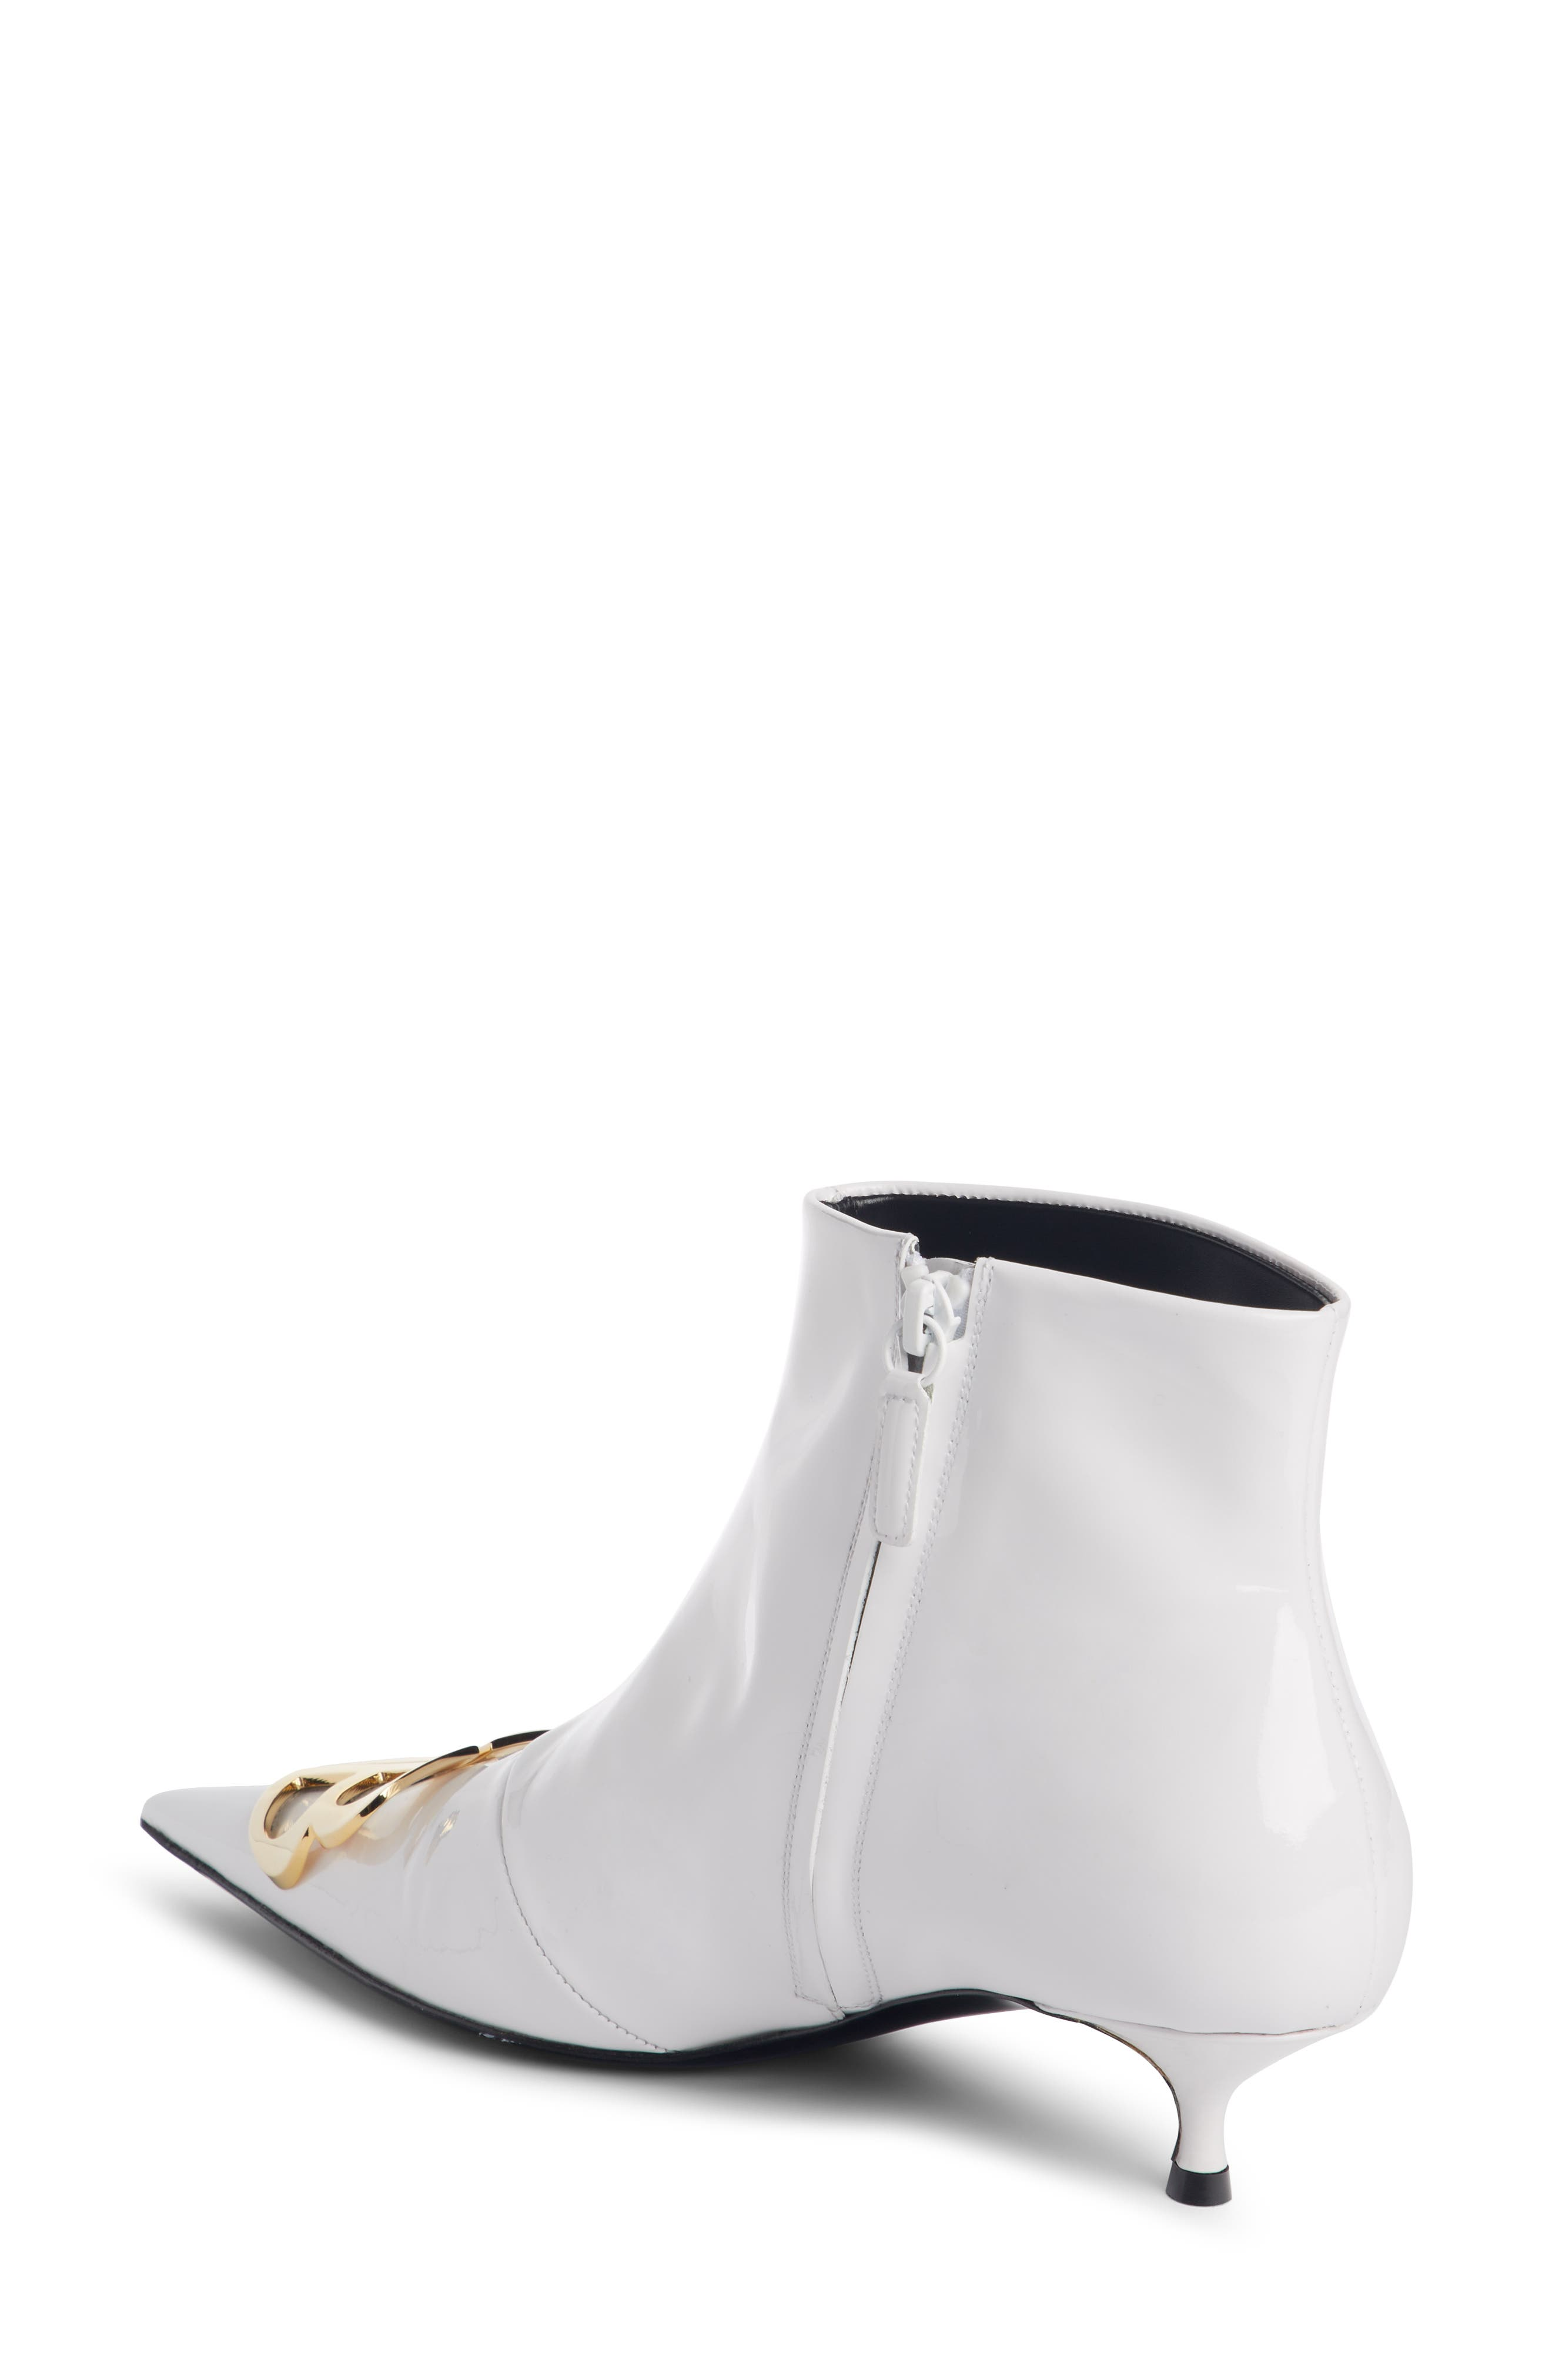 BB Pointy Toe Bootie,                             Alternate thumbnail 2, color,                             WHITE